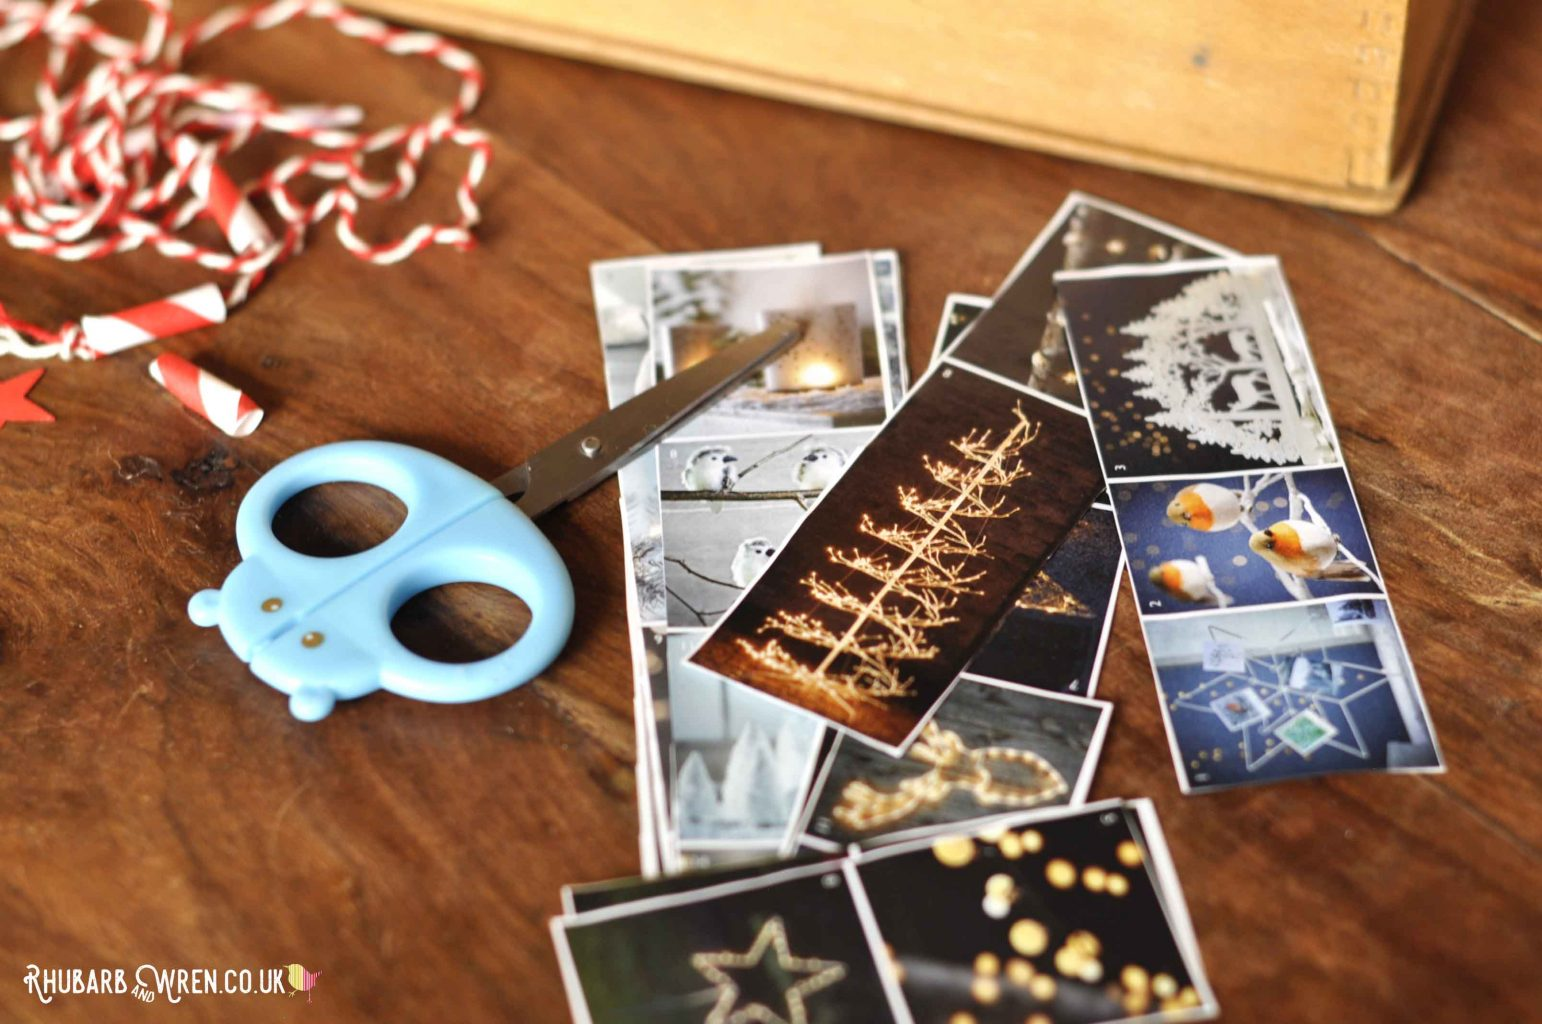 strips of pictures from christmas catalogues with kids' scissors